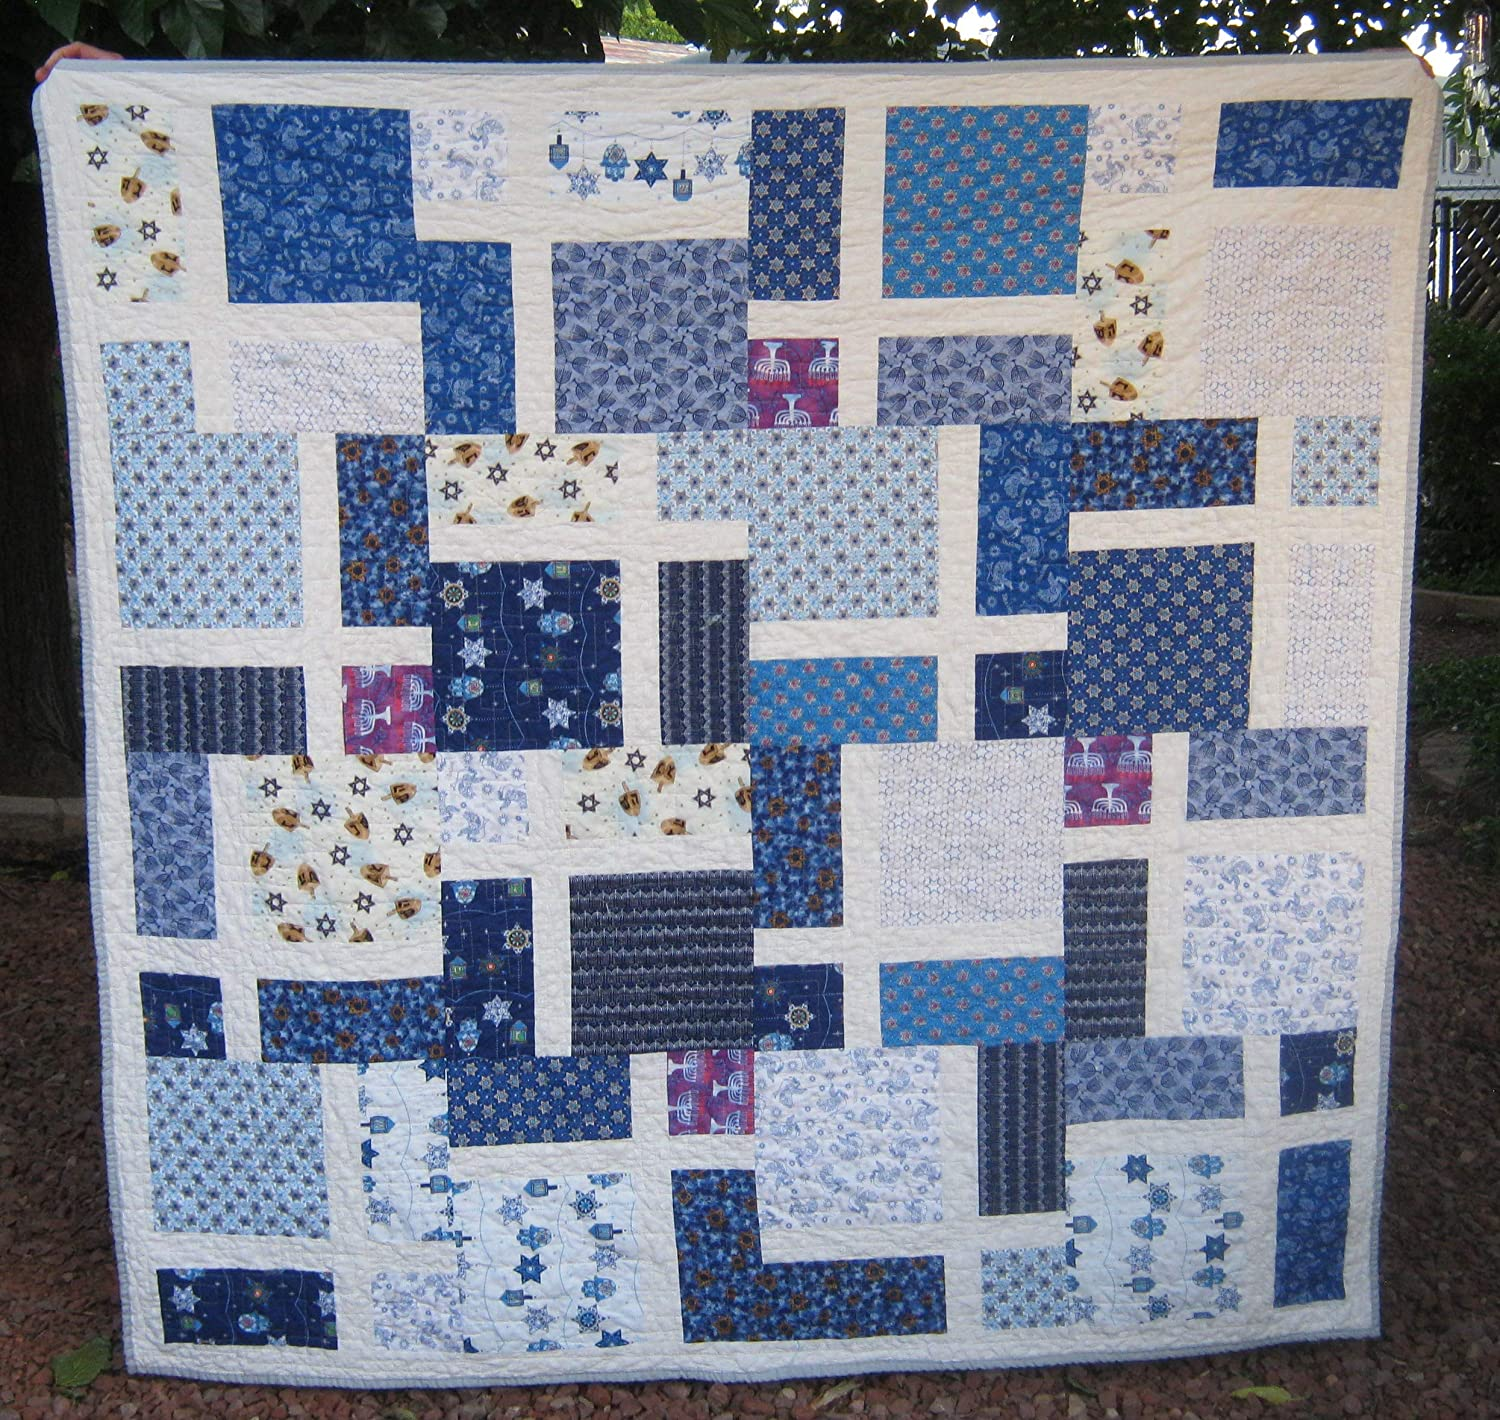 Image of Handmade Hanukkah Lap Quilt, Holiday Throw, Patchwork Fiber Art, Home Decor, Quilted Nap Blanket, Chanukah Gift Home and Kitchen